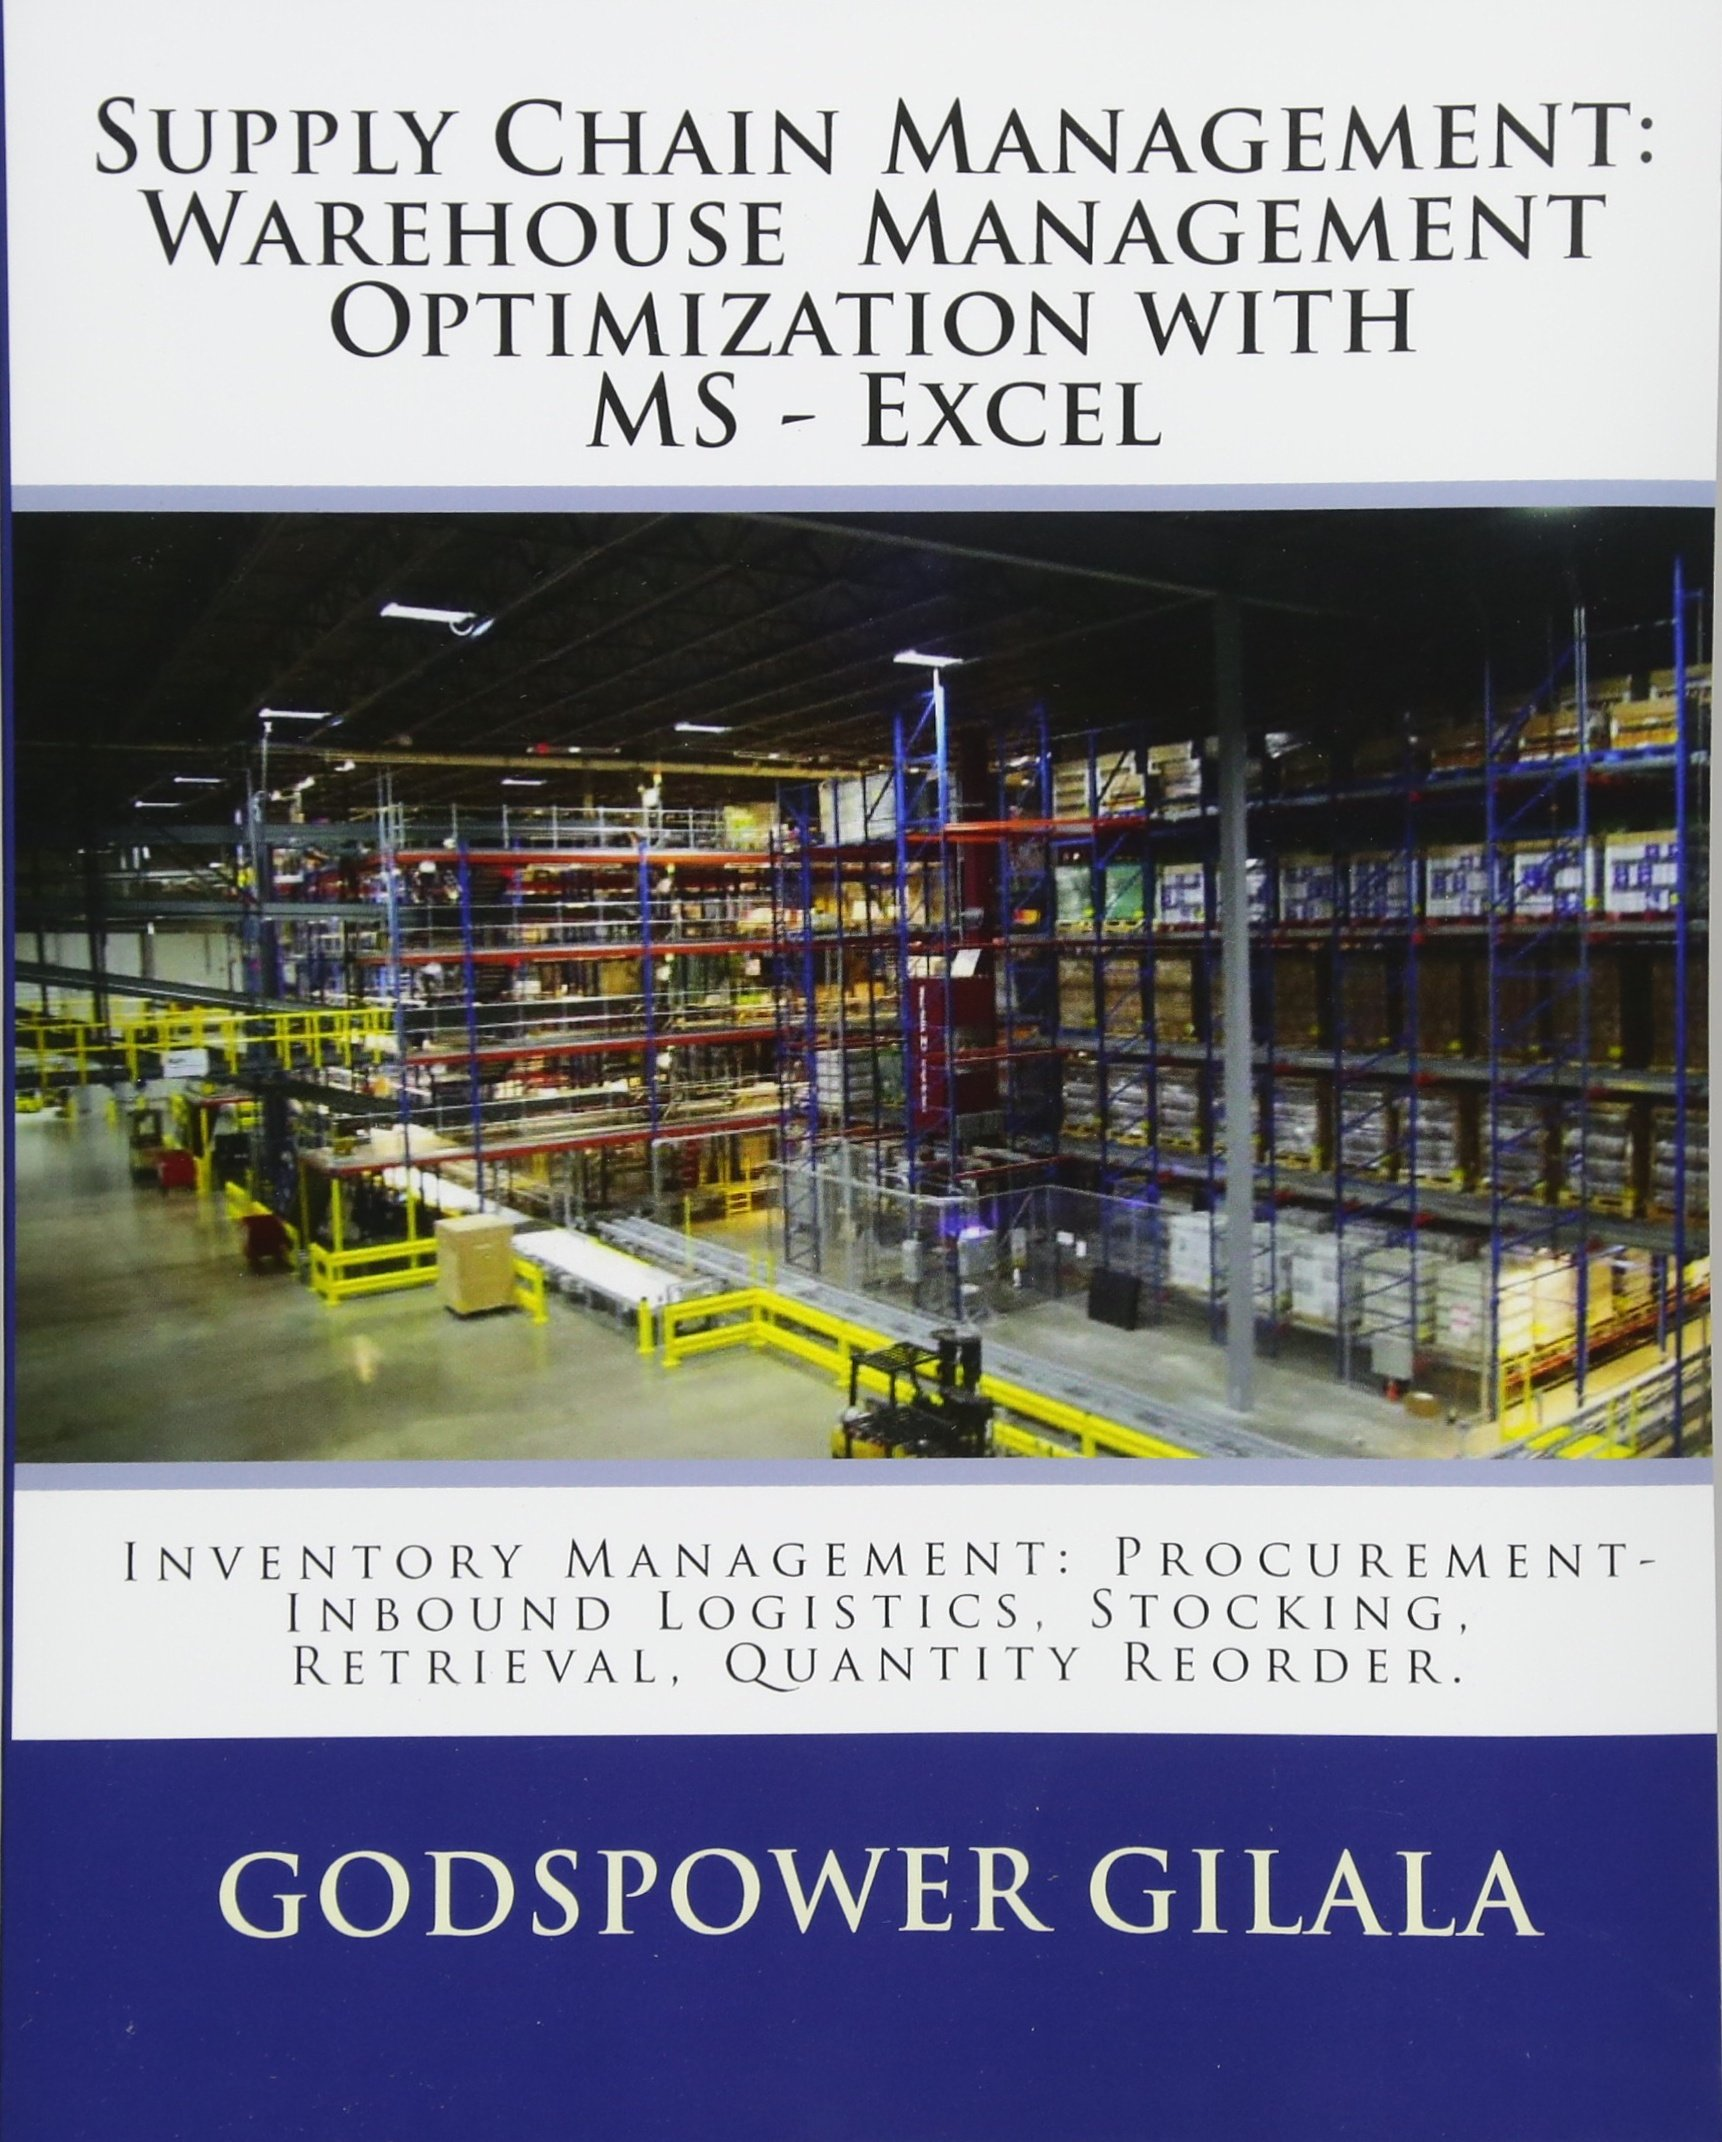 supply chain management warehouse management optimization with ms